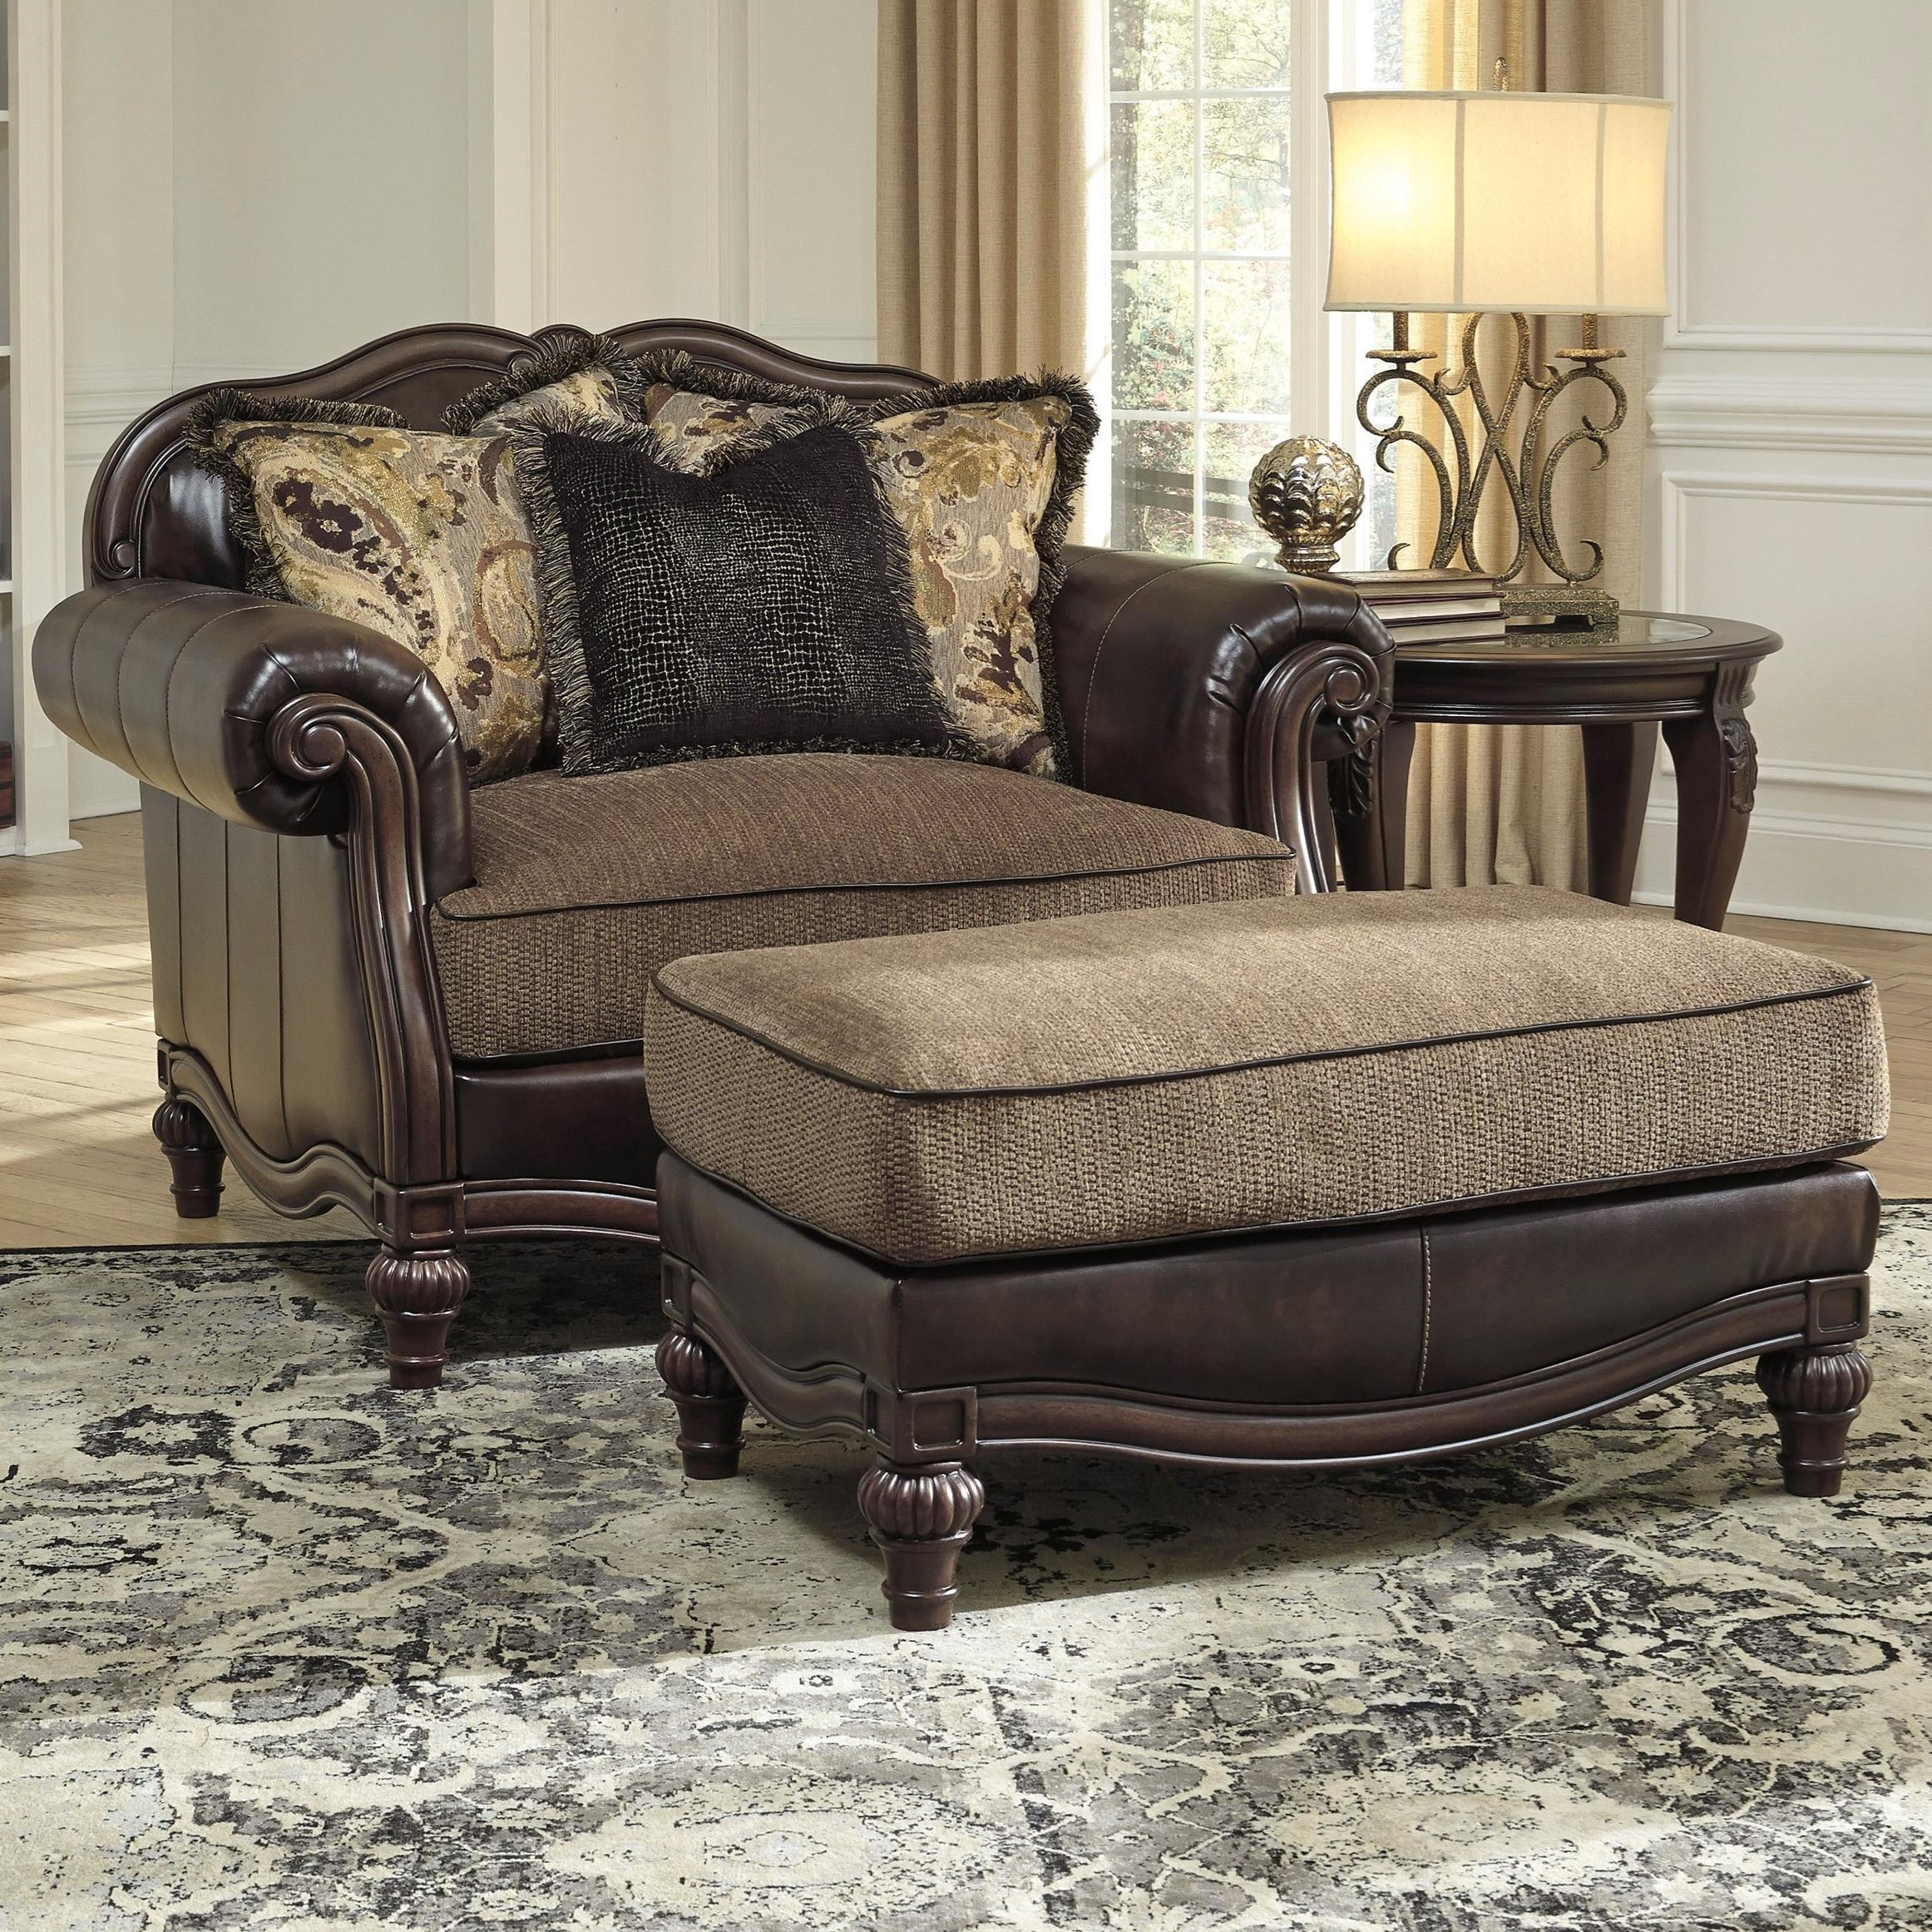 Bon Signature Design By Ashley Winnsboro DuraBlend Chair And A Half U0026 Ottoman